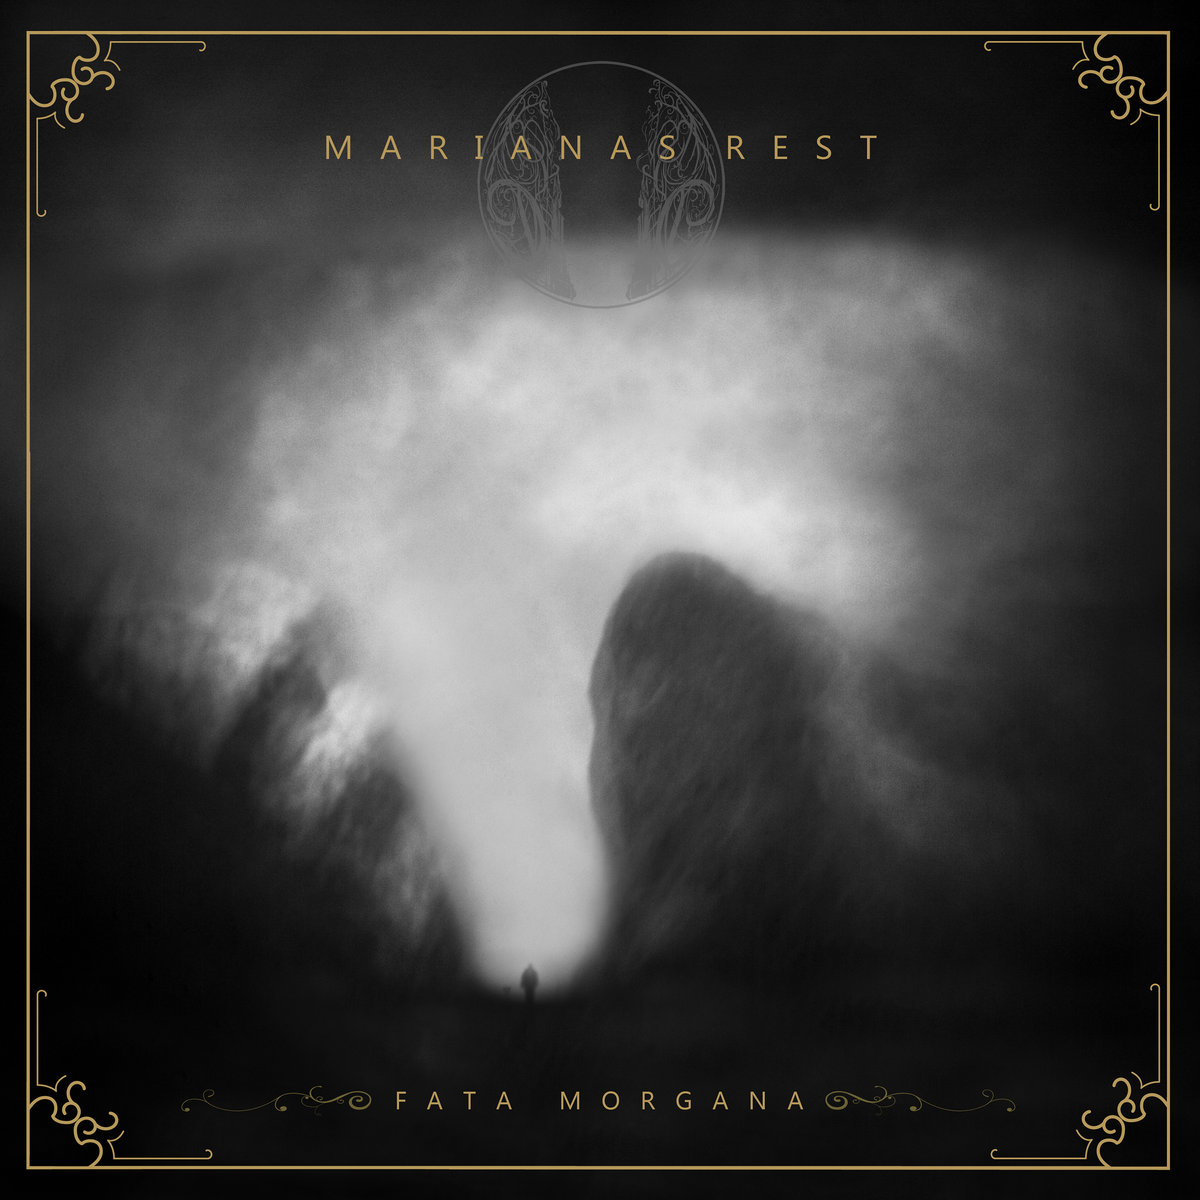 marianas rest fata morgana album cover artwork